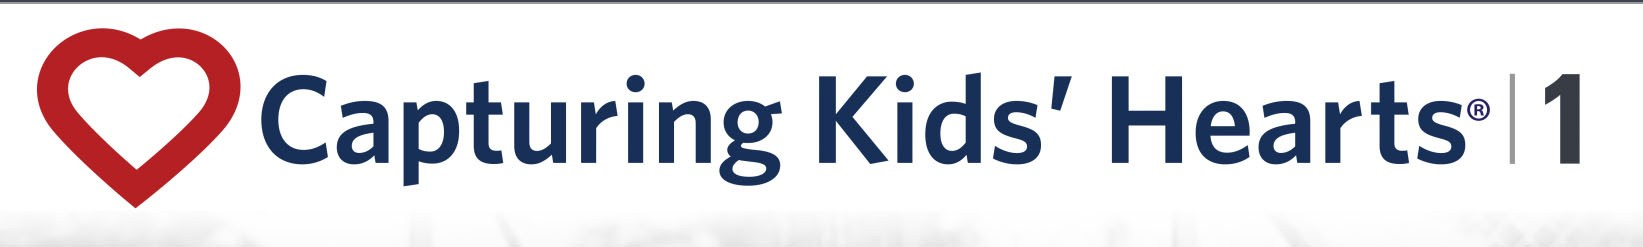 Capturing Kids Hearts logo